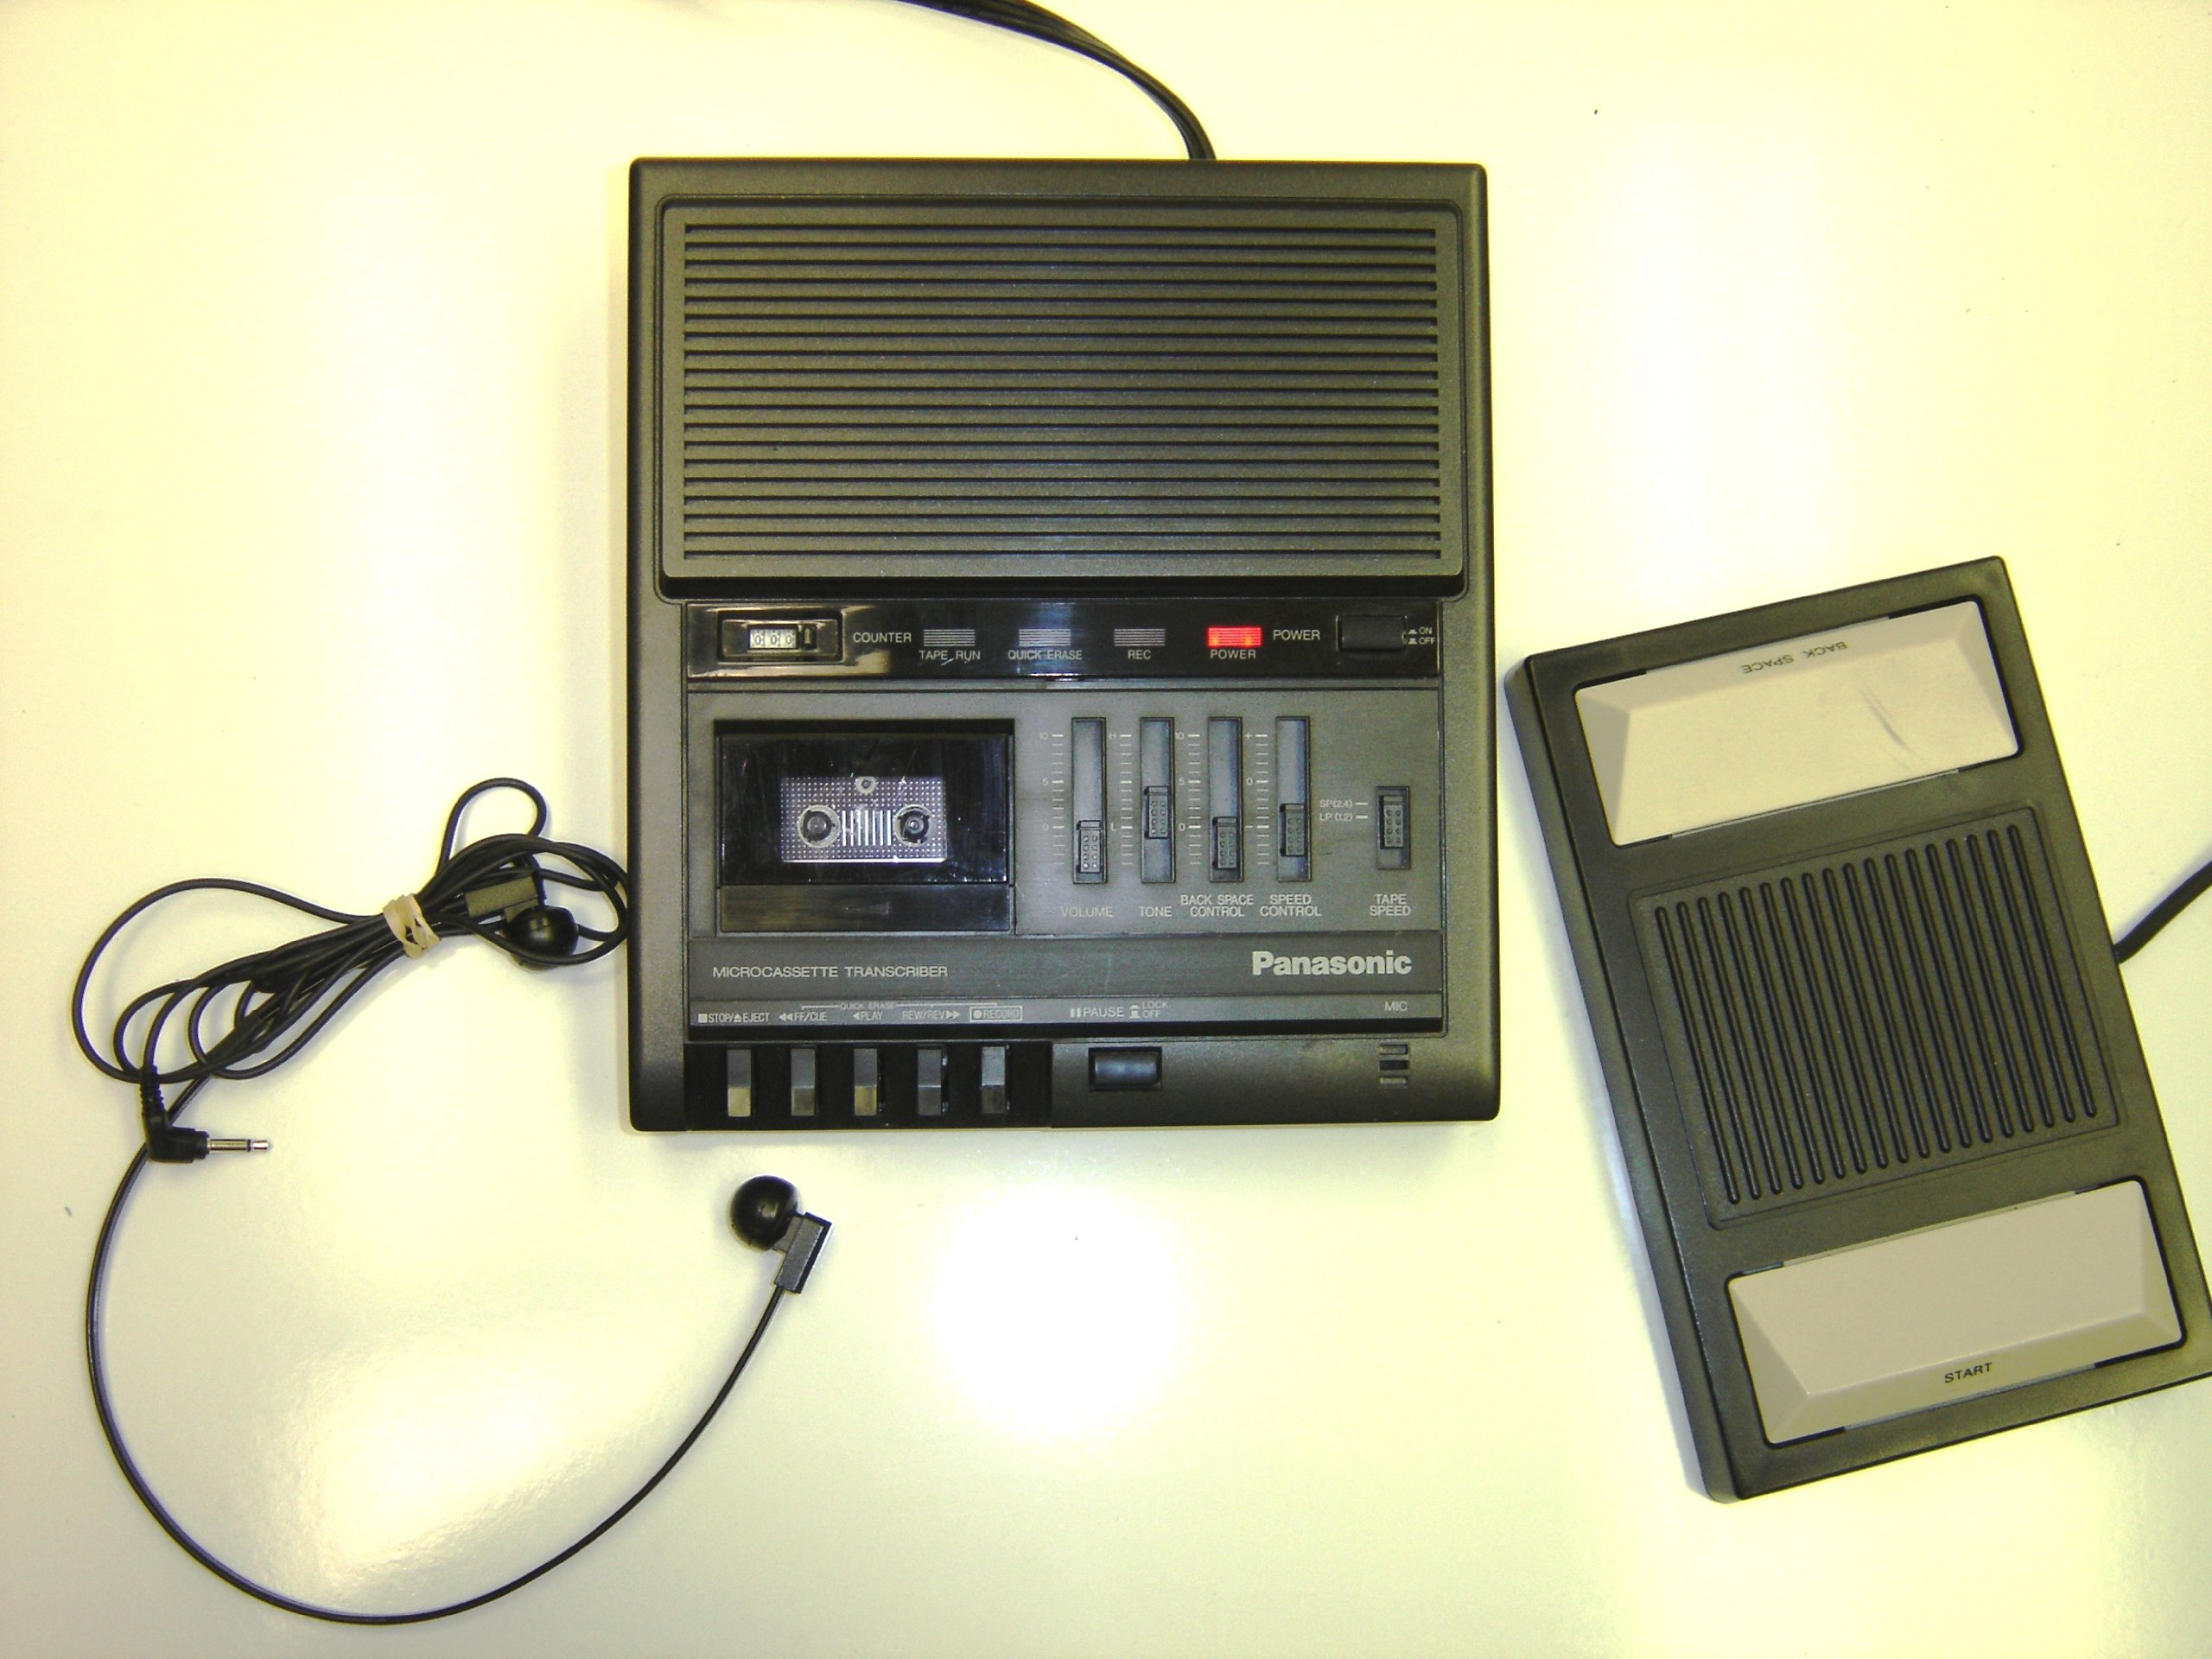 Panasonic RR-930 MicroCassette Transcriber by Panasonic by Panasonic